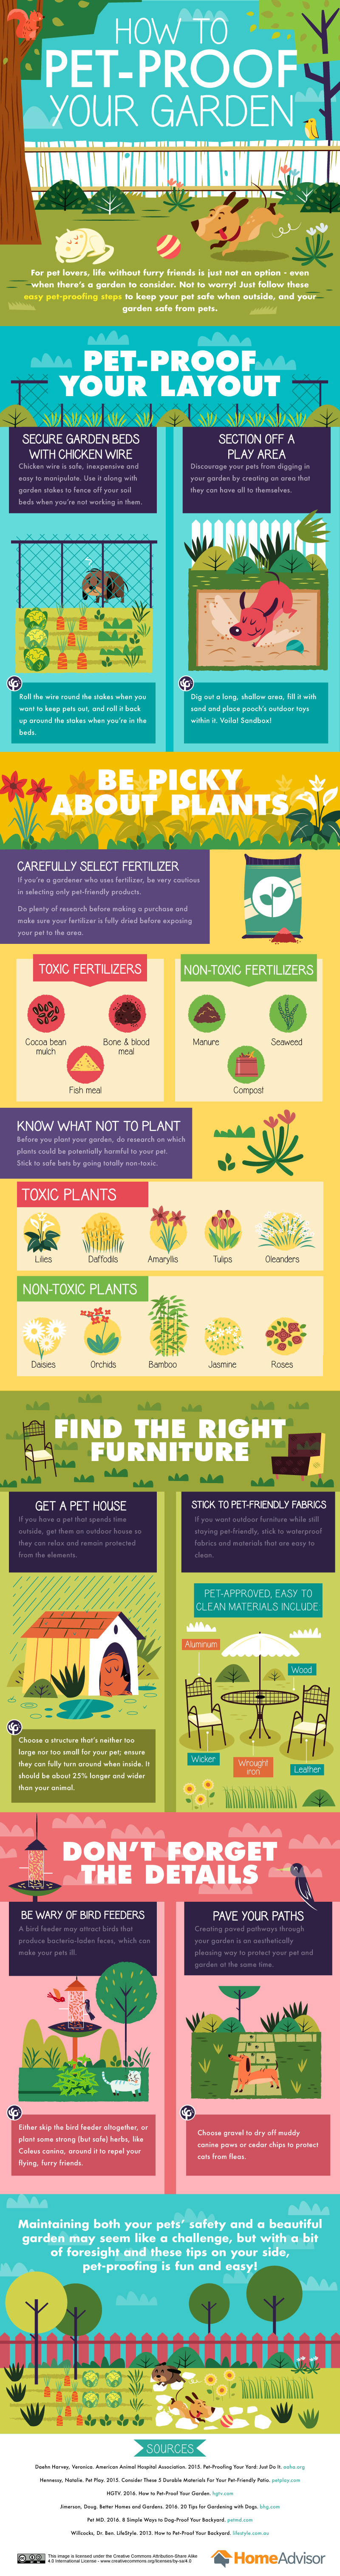 How to pet-proof your garden (infographic)